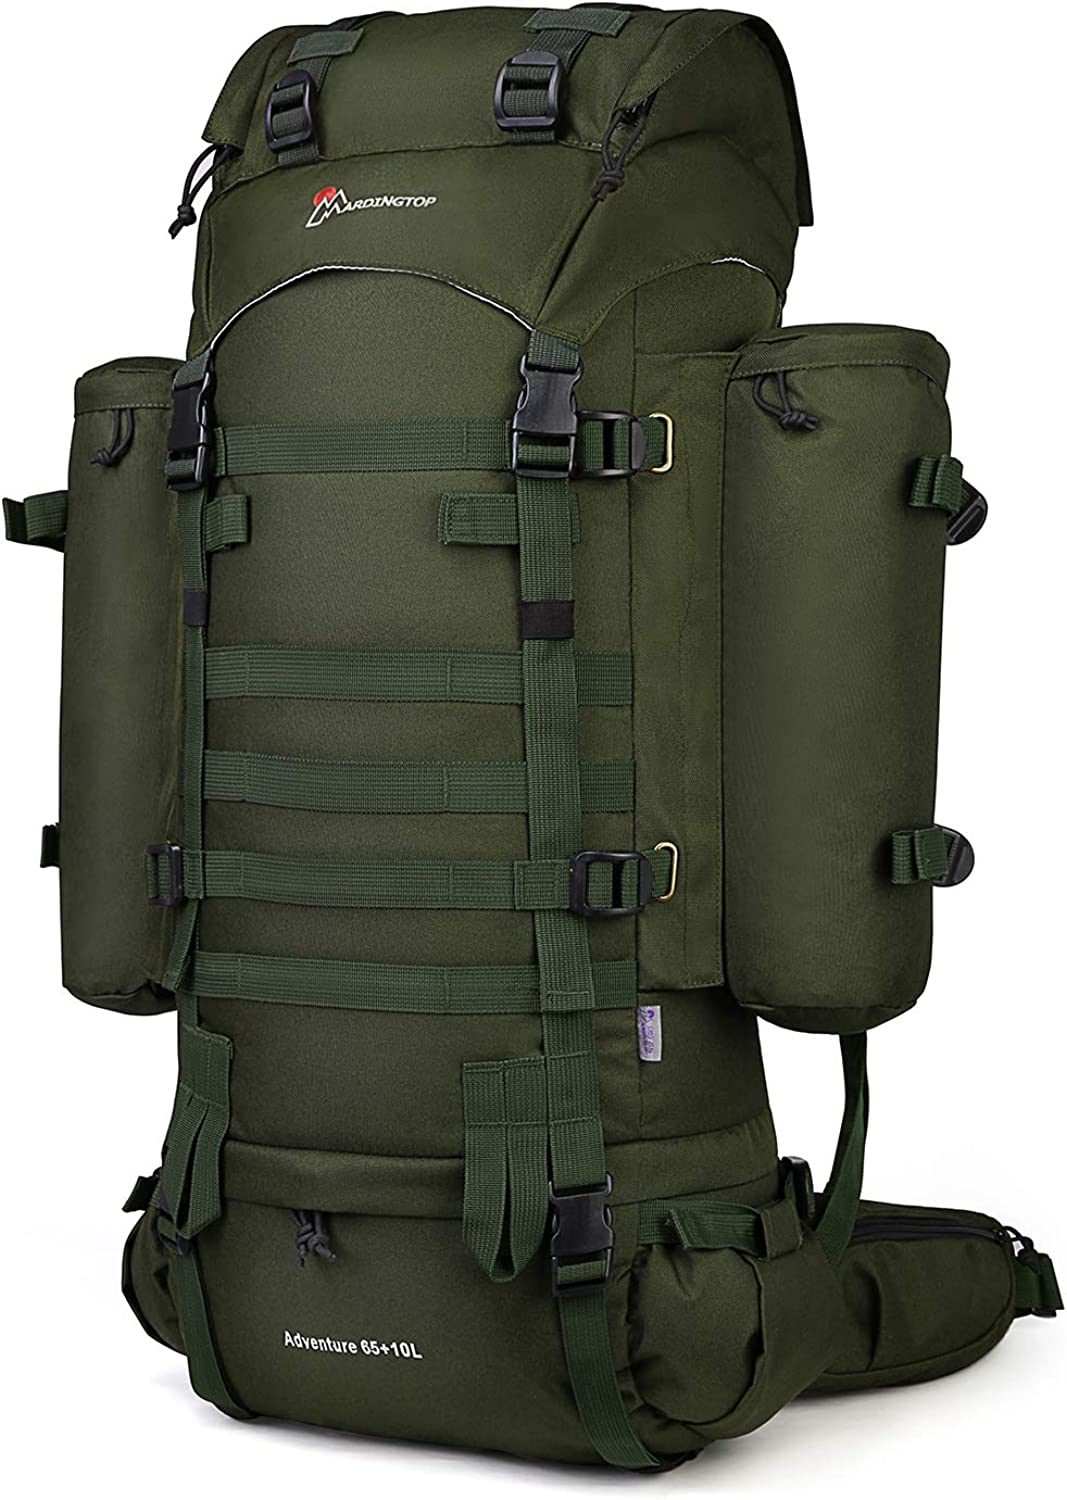 Mardingtop 65 10L 65L Molle Hiking Internal Frame Backpack